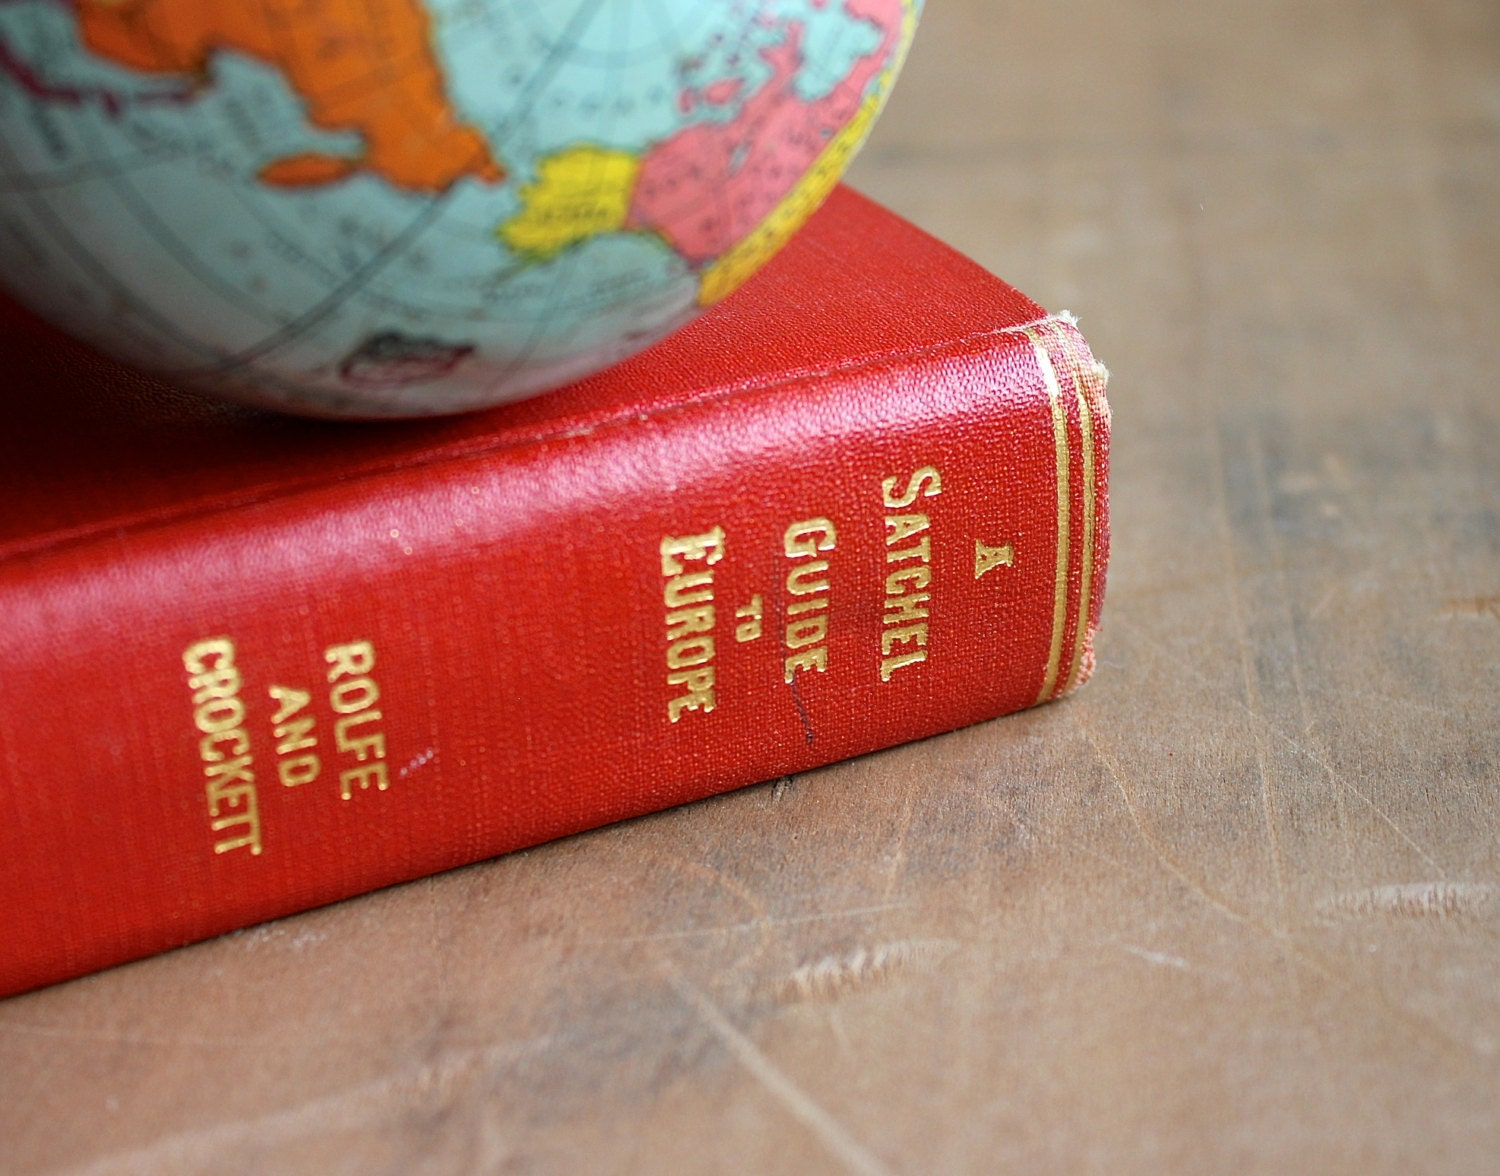 Off to Europe - Antique 1929 Guide to Europe - Vintage Book - Maps - Paris - Travel - Red - becaruns